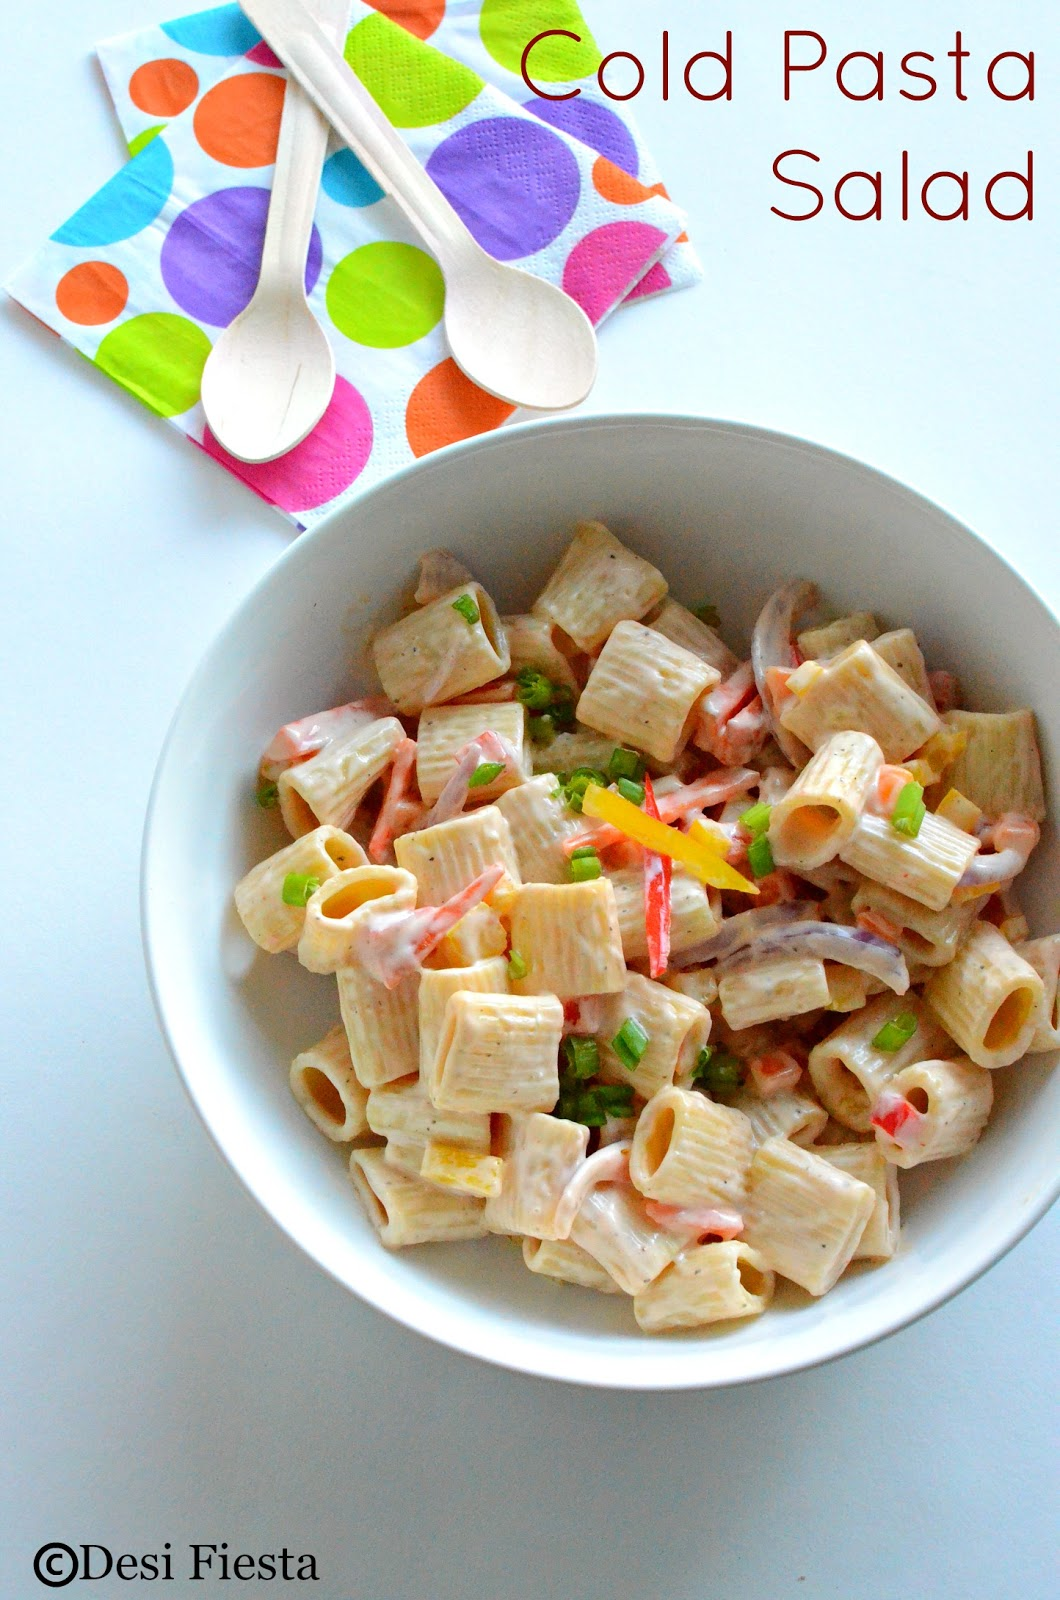 Desi Fiesta Cold Pasta Salad With 1000 Island Dressing